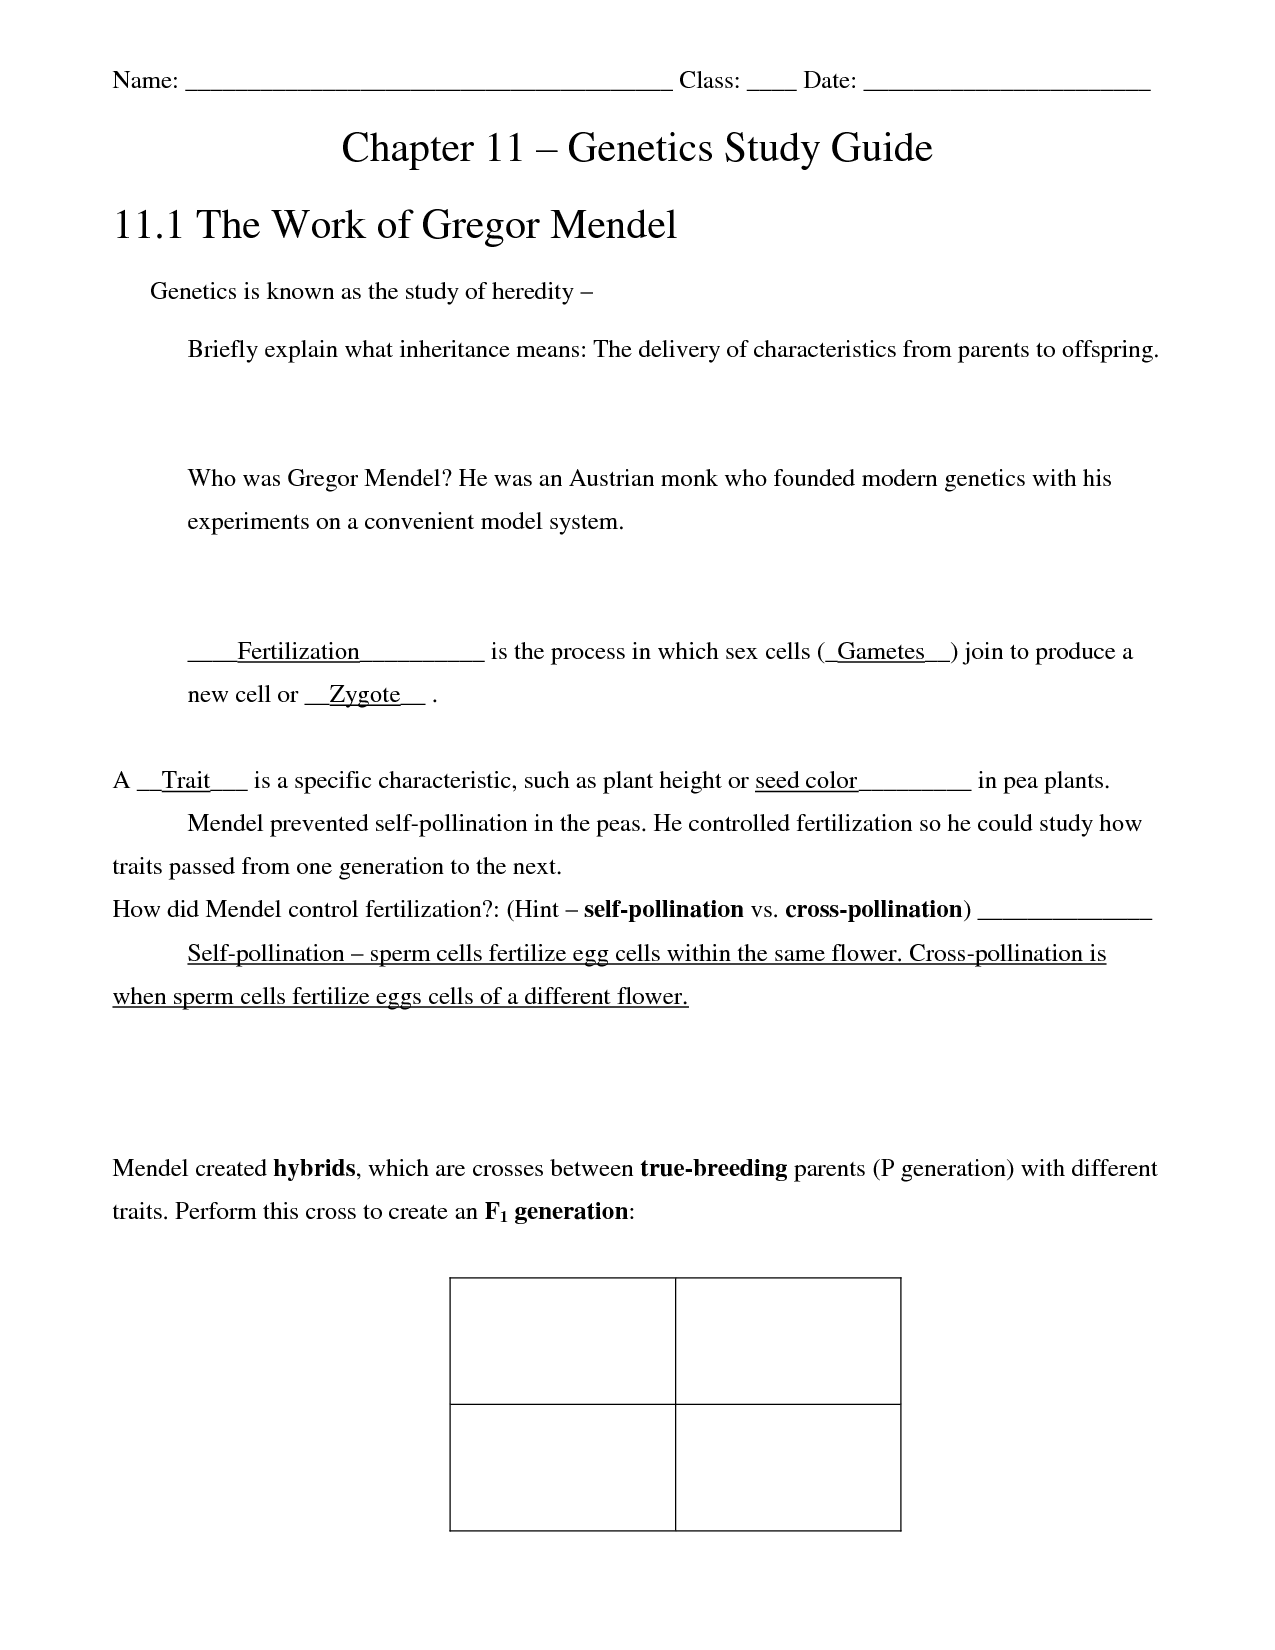 12 Best Images Of Chapter 11 Dna And Genes Worksheet